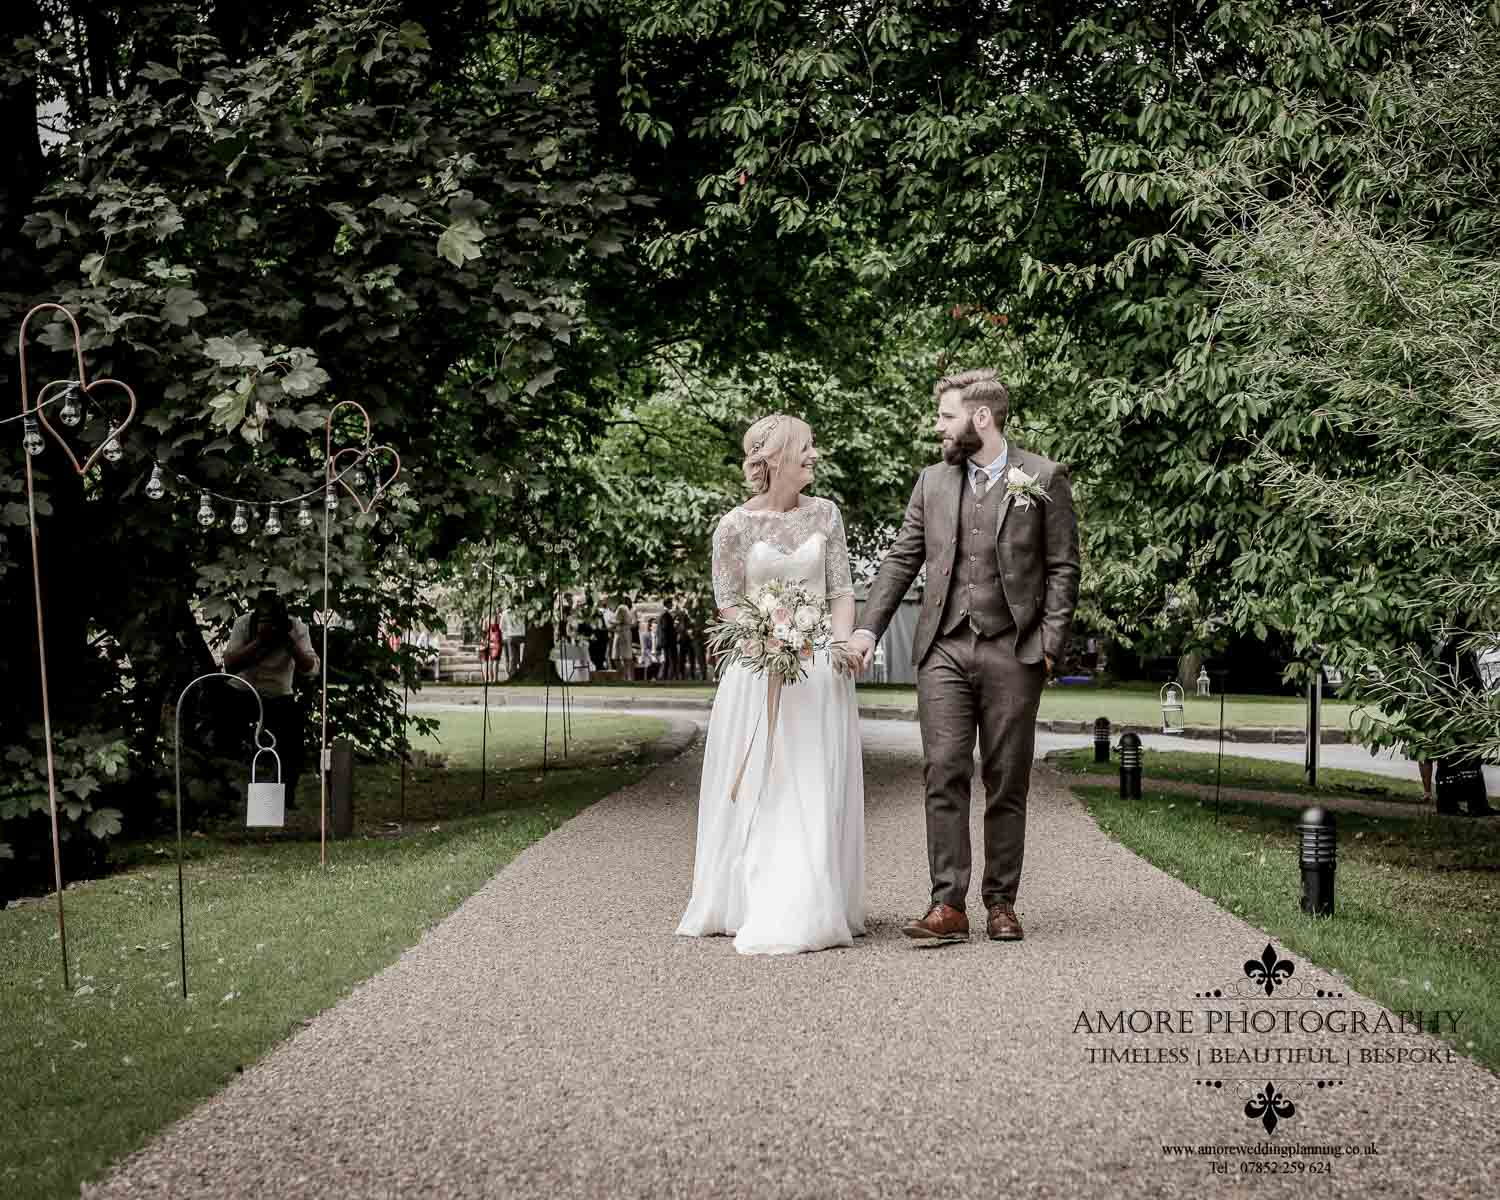 Vintage Wedding Photographer Wakefield North Yorkshire Leeds Wedding Photography Vintage Rustic Barn Weddings (100)